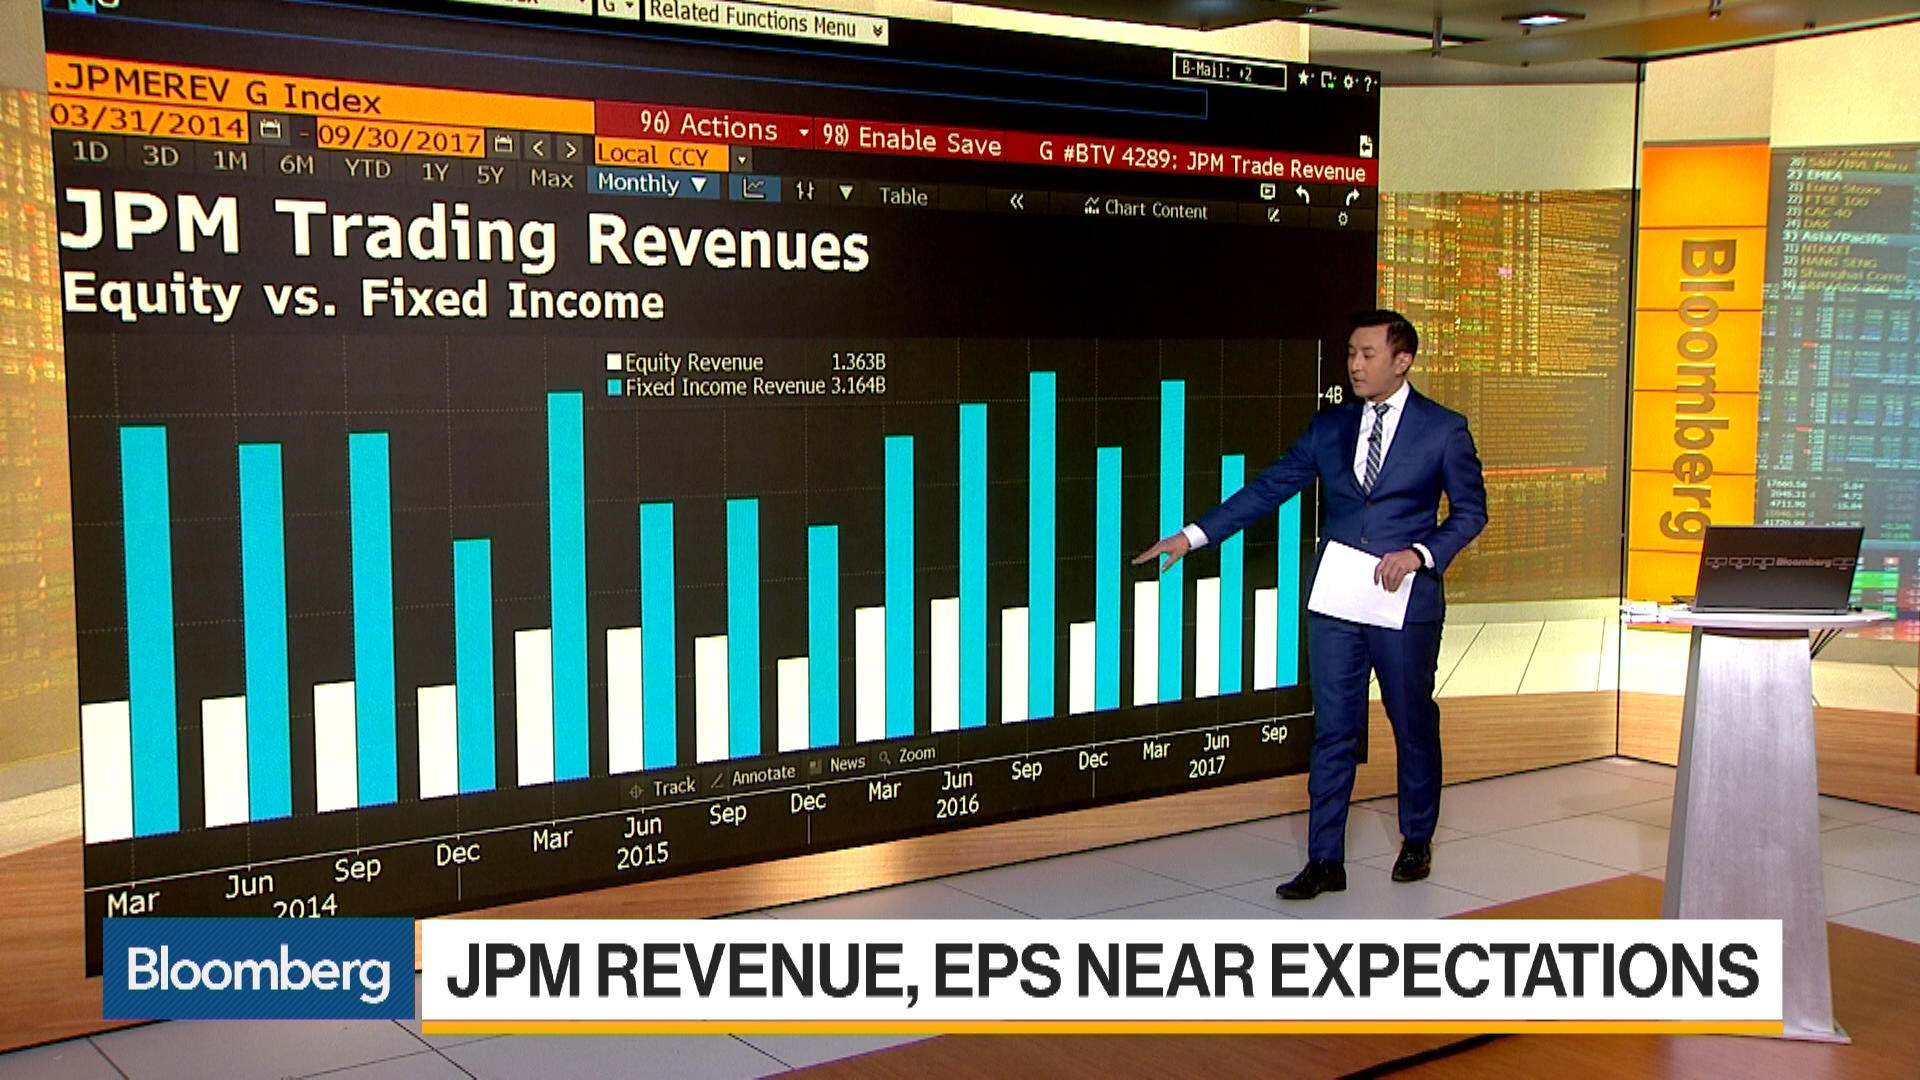 Jpm Stock Quote Jpm*mexico Stock Quote  Jpmorgan Chase & Co  Bloomberg Markets